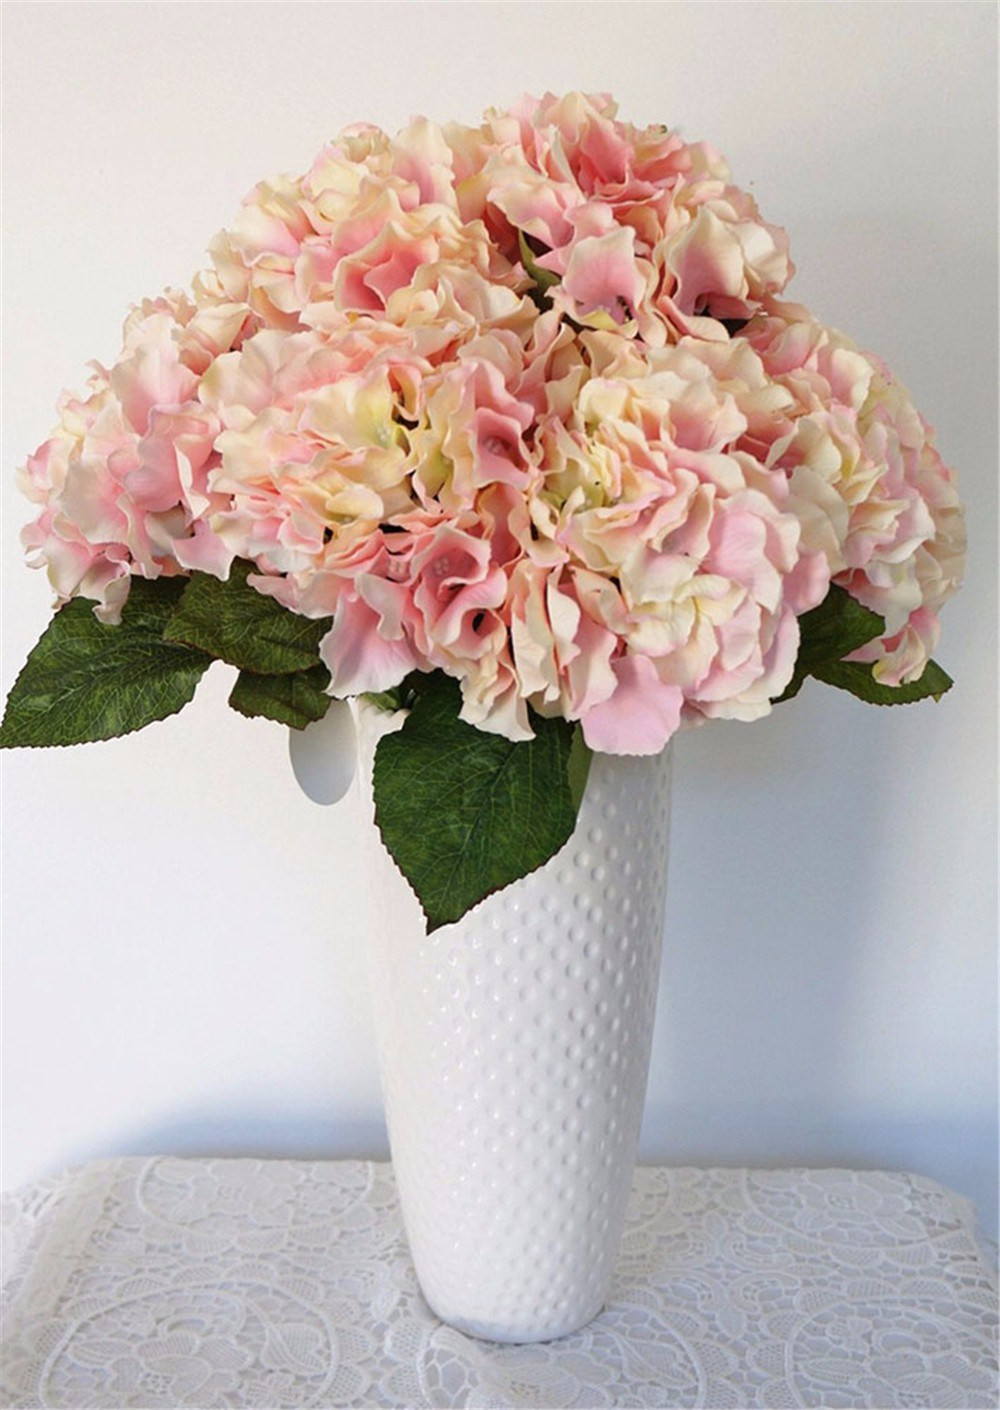 Vase with Pink Roses Van Gogh Of Aƒ5 Heads Real touch Artificial Fake Silk Flower Bunch Hydrangea for B5 9385 2